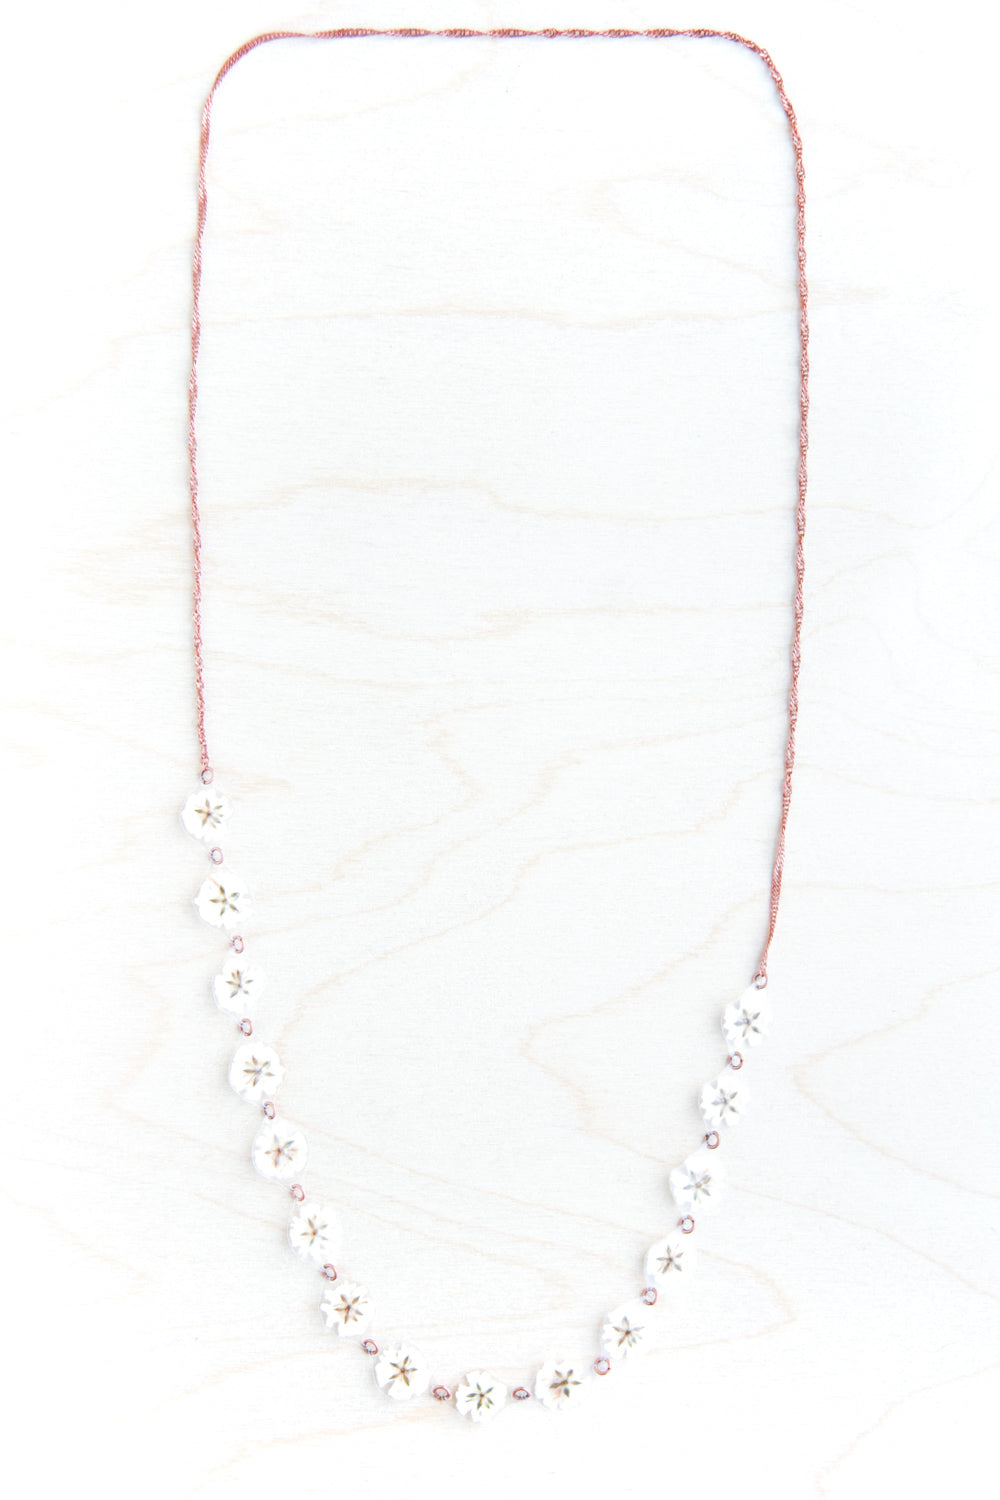 White Baby's Breath Flower 'Daisy Chain' Necklace